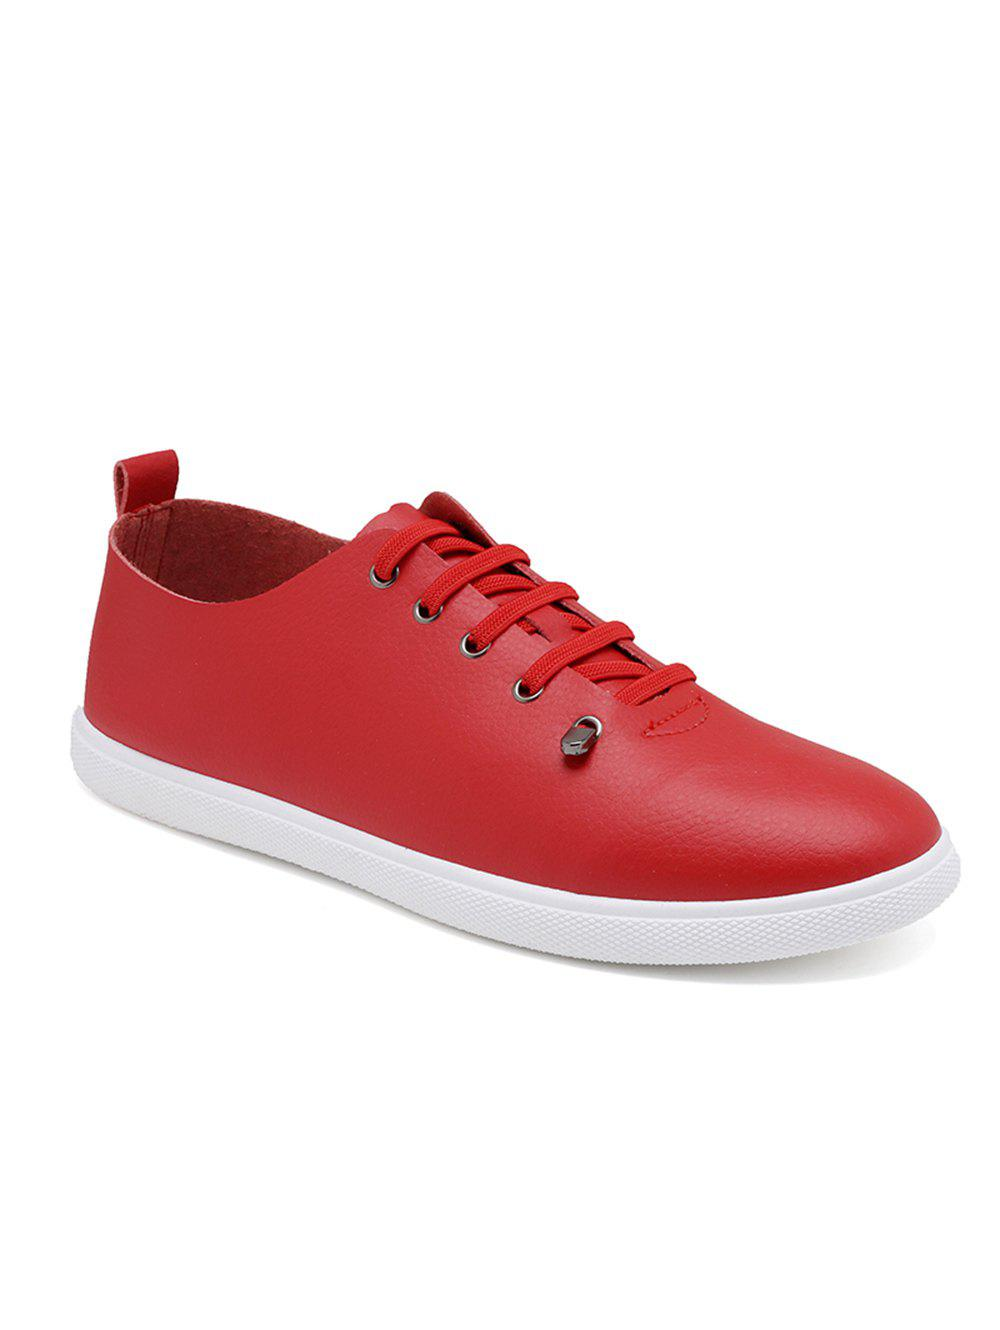 PU Leather Lace Up Leisure Flats - RED 43